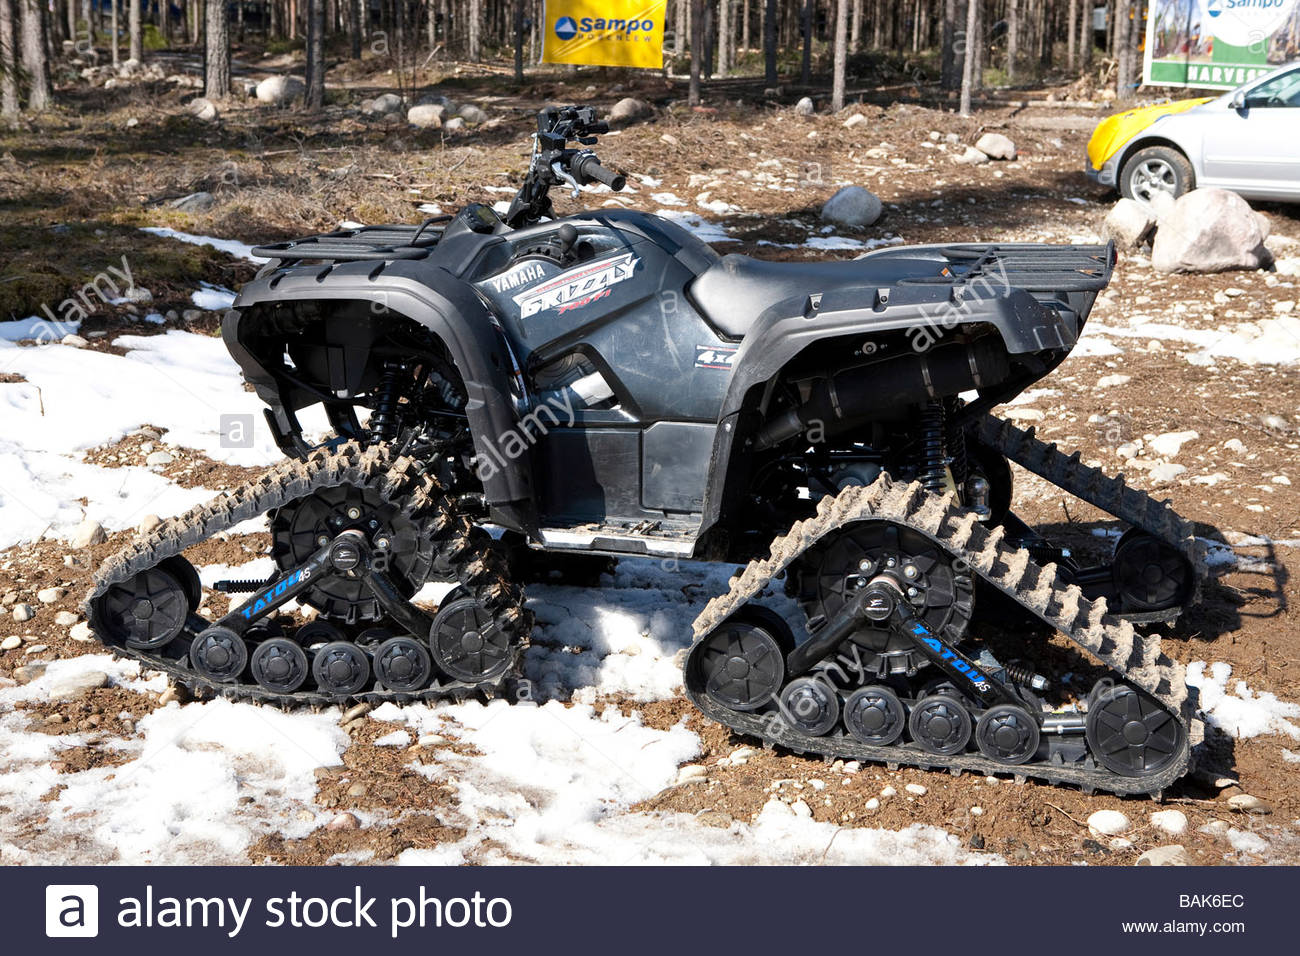 A Yamaha made ATV All Terrain Vechile with friction chains Finland - Stock Image